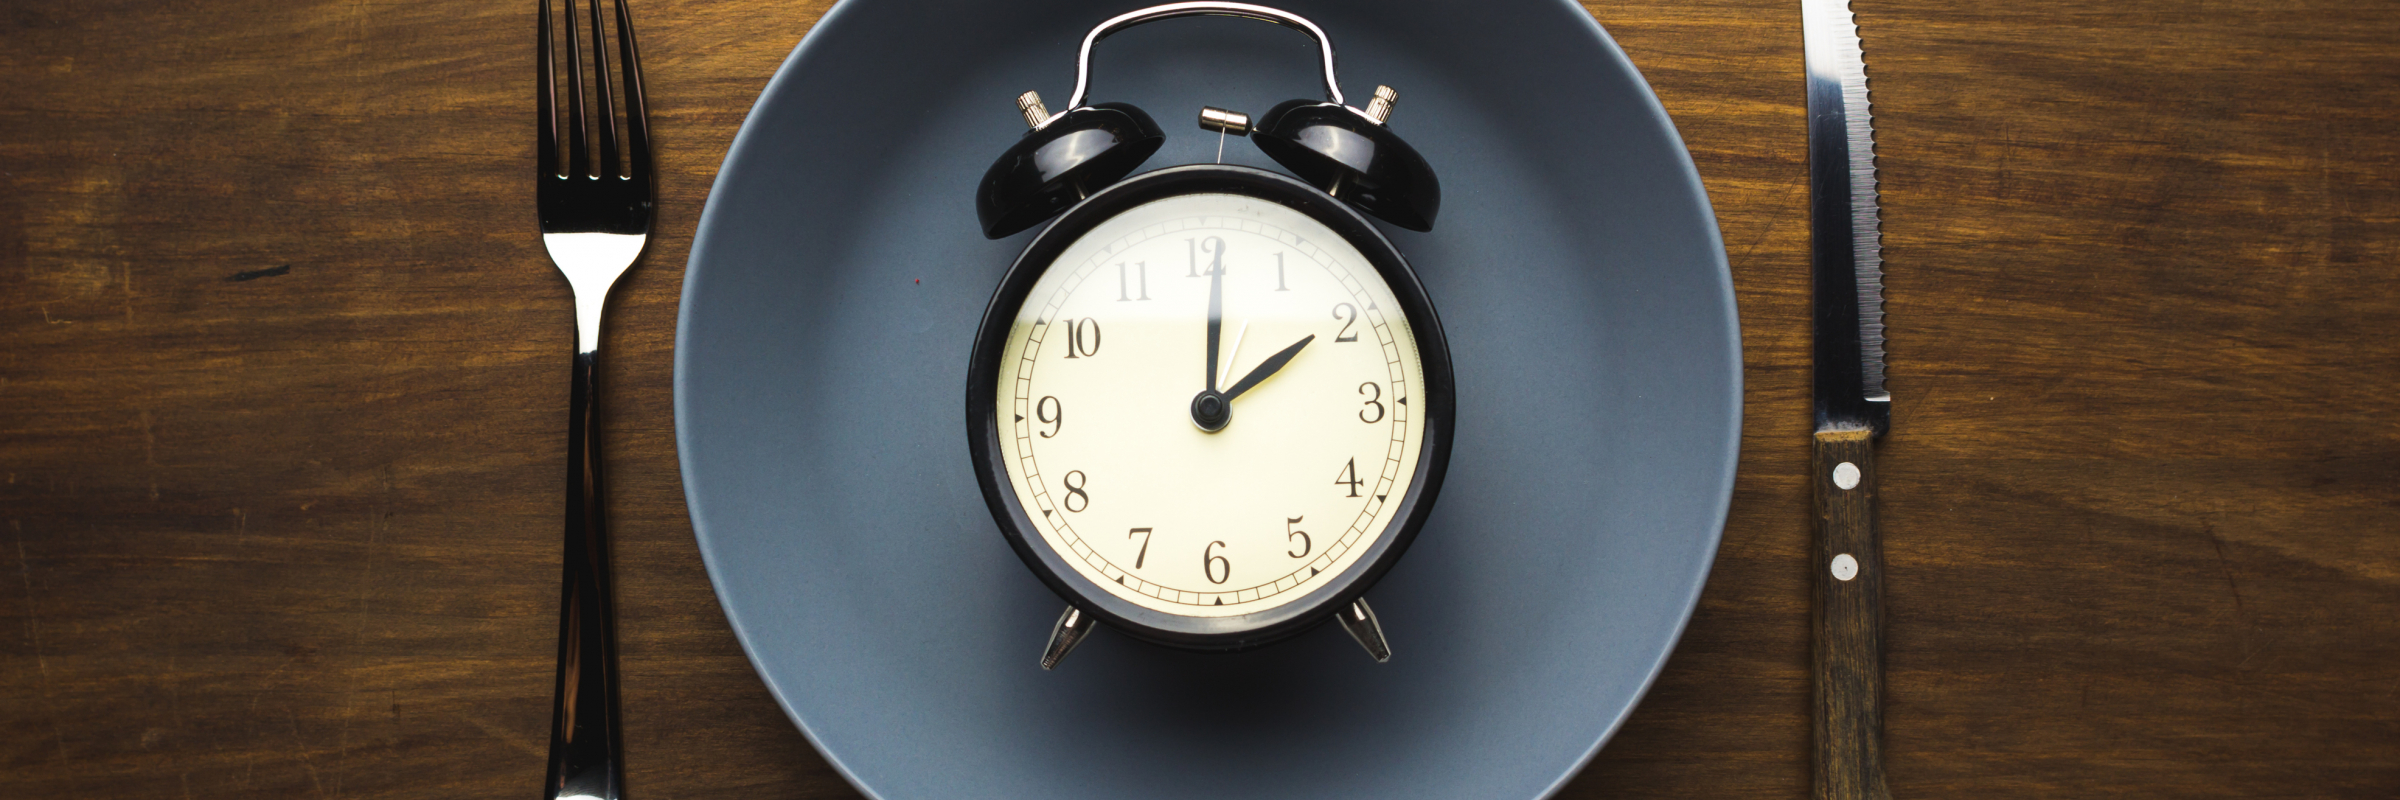 Meal time clock